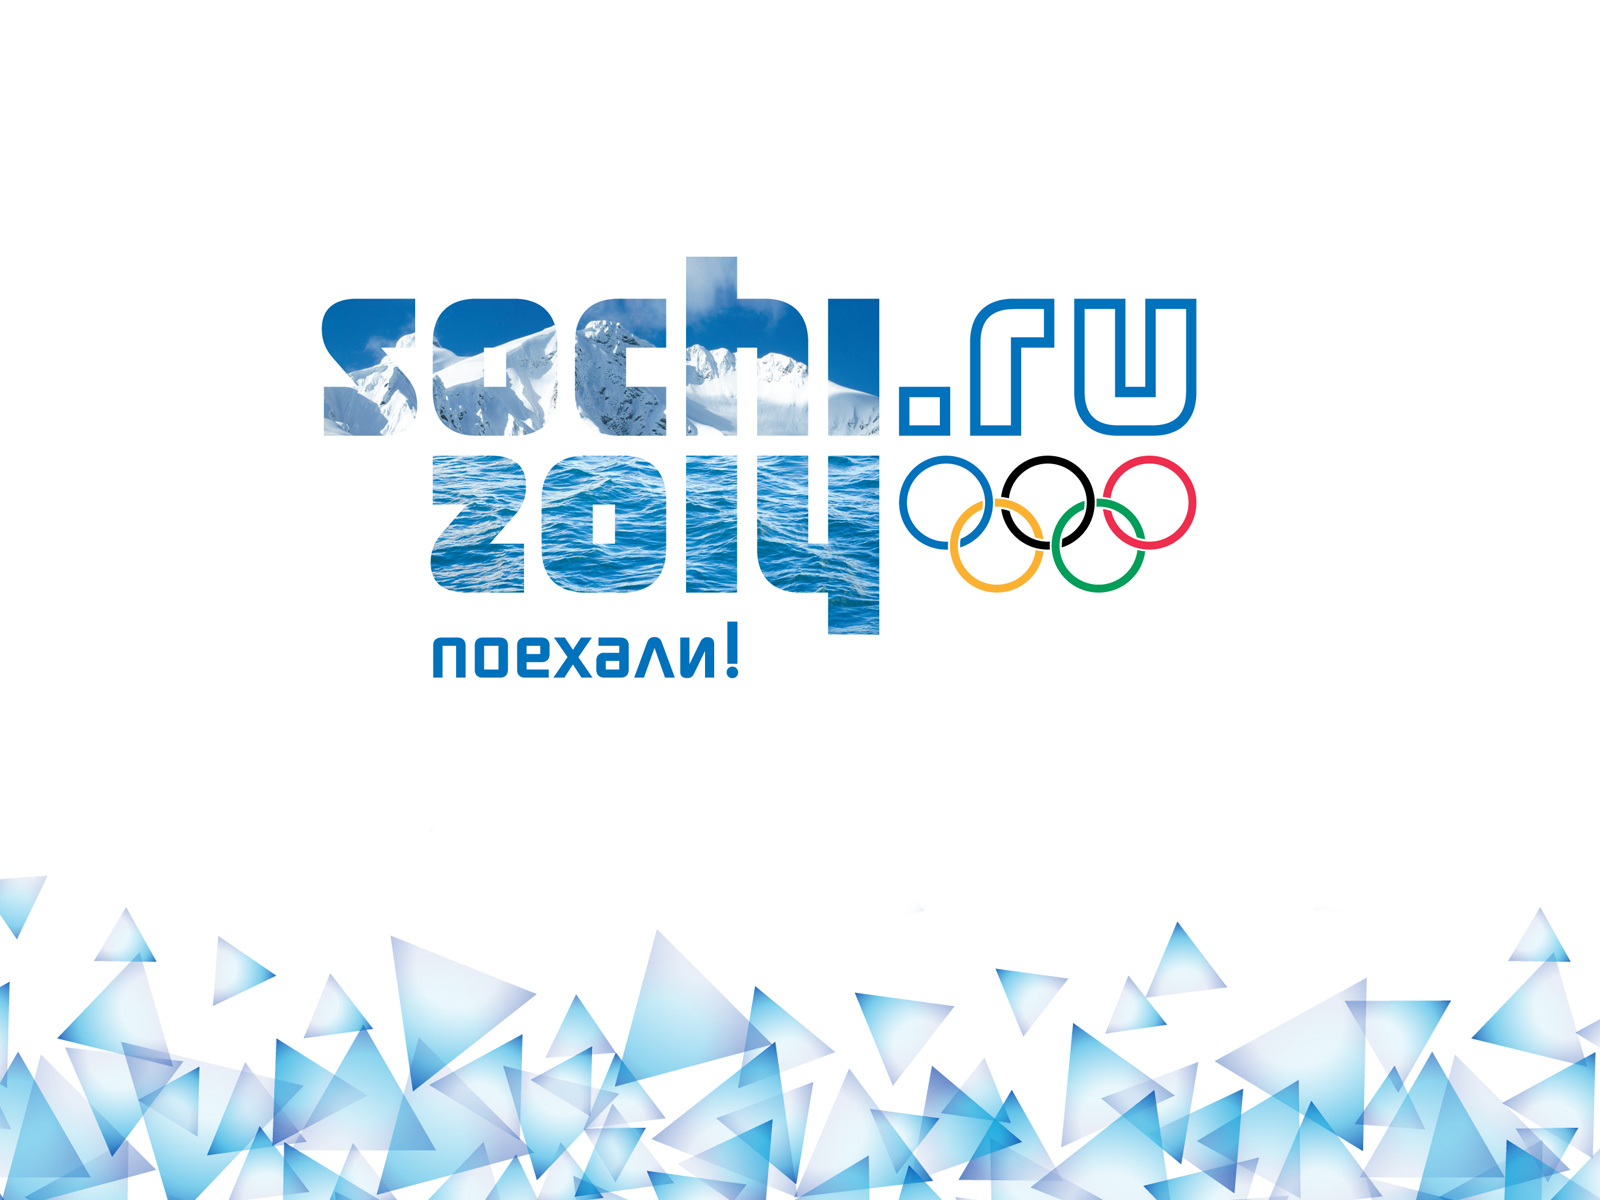 2014 winter olympics Interesting facts and criticism of the 2014 winter olympics in sochi, russia.